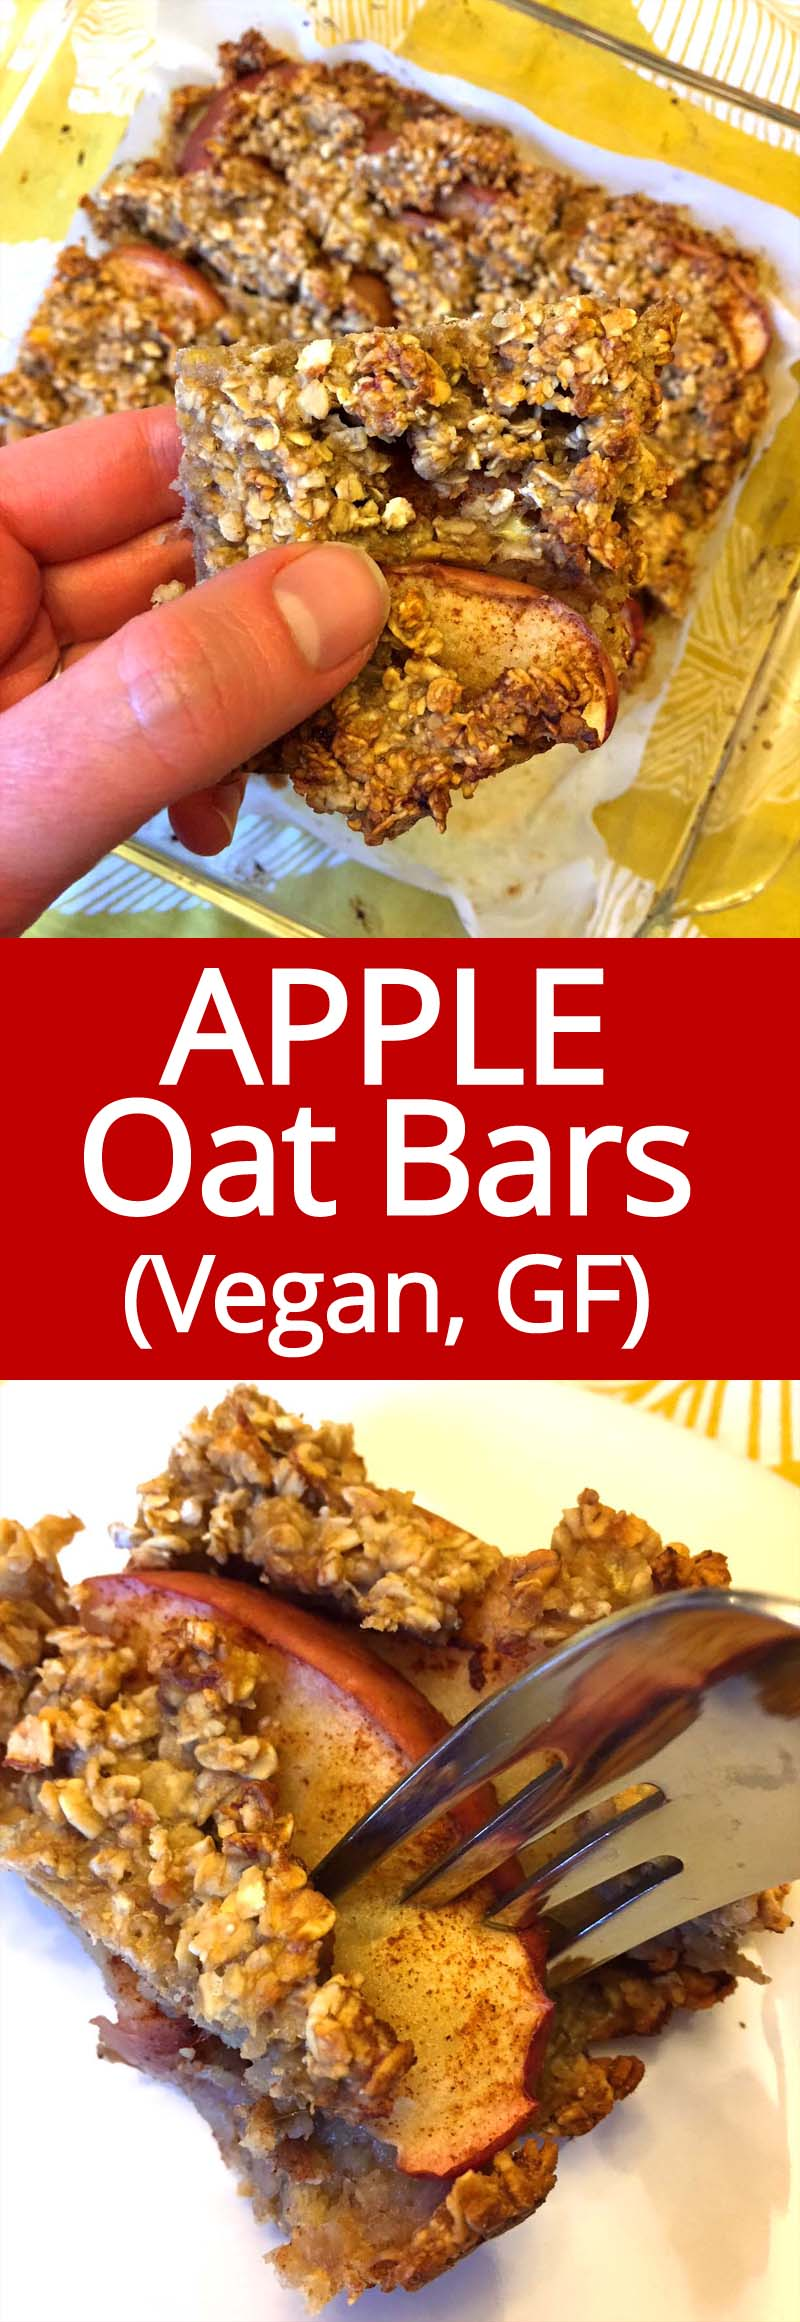 These amazing apple oatmeal squares are so healthy and delicious! Vegan, gluten-free, refined sugar-free! This is my perfect breakfast and snack!